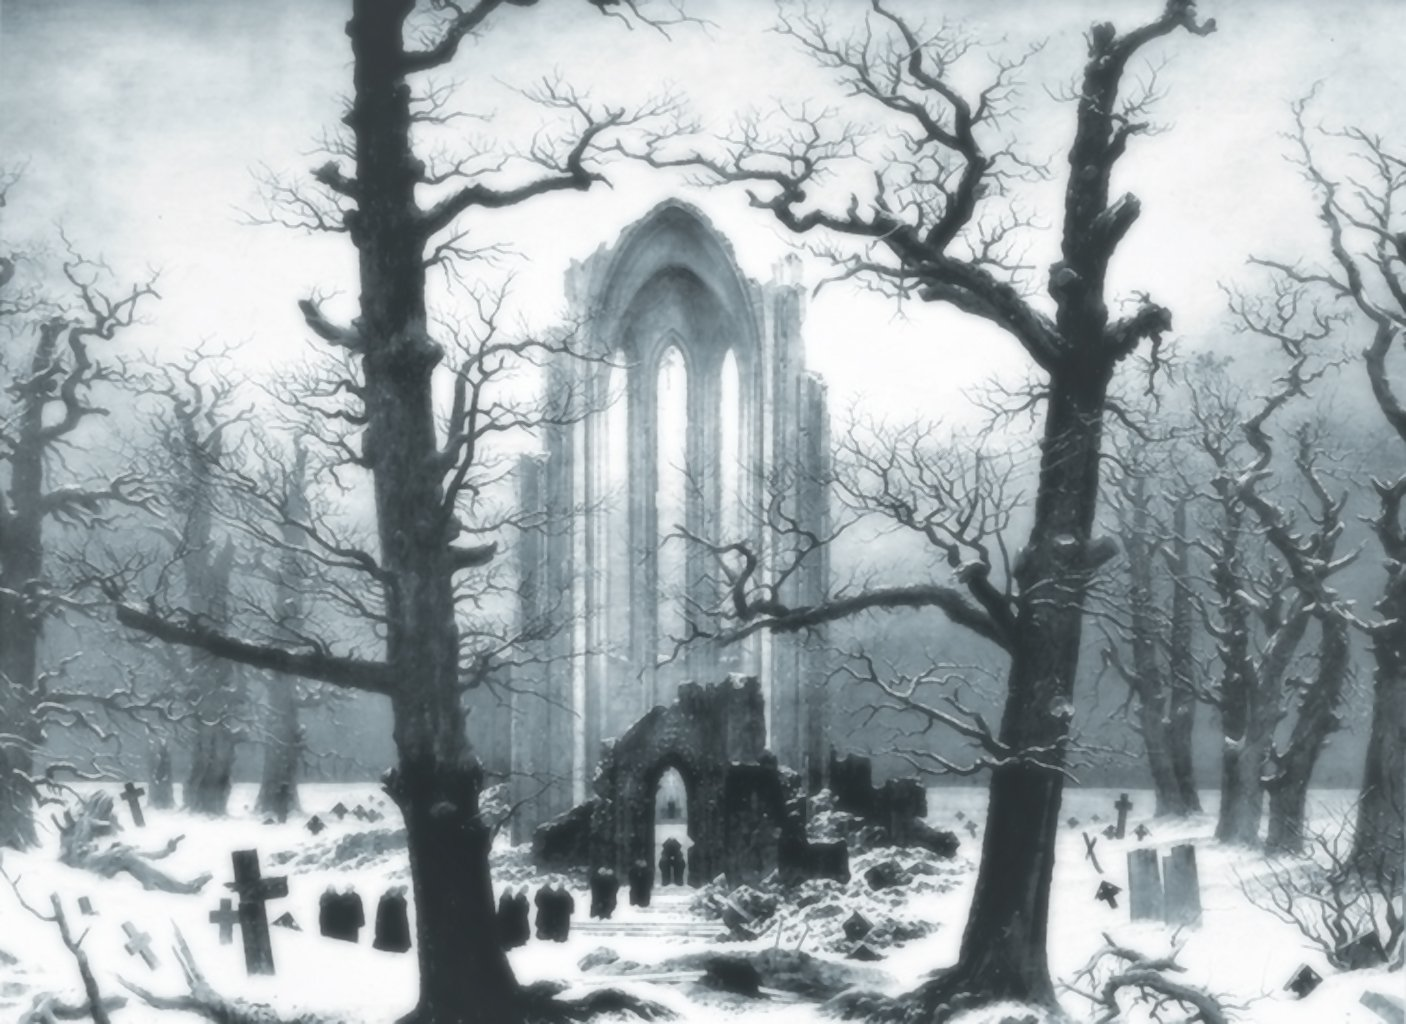 Monastery Graveyard in the Snow (Caspar David Friedrich, 1819, oil on canvas)